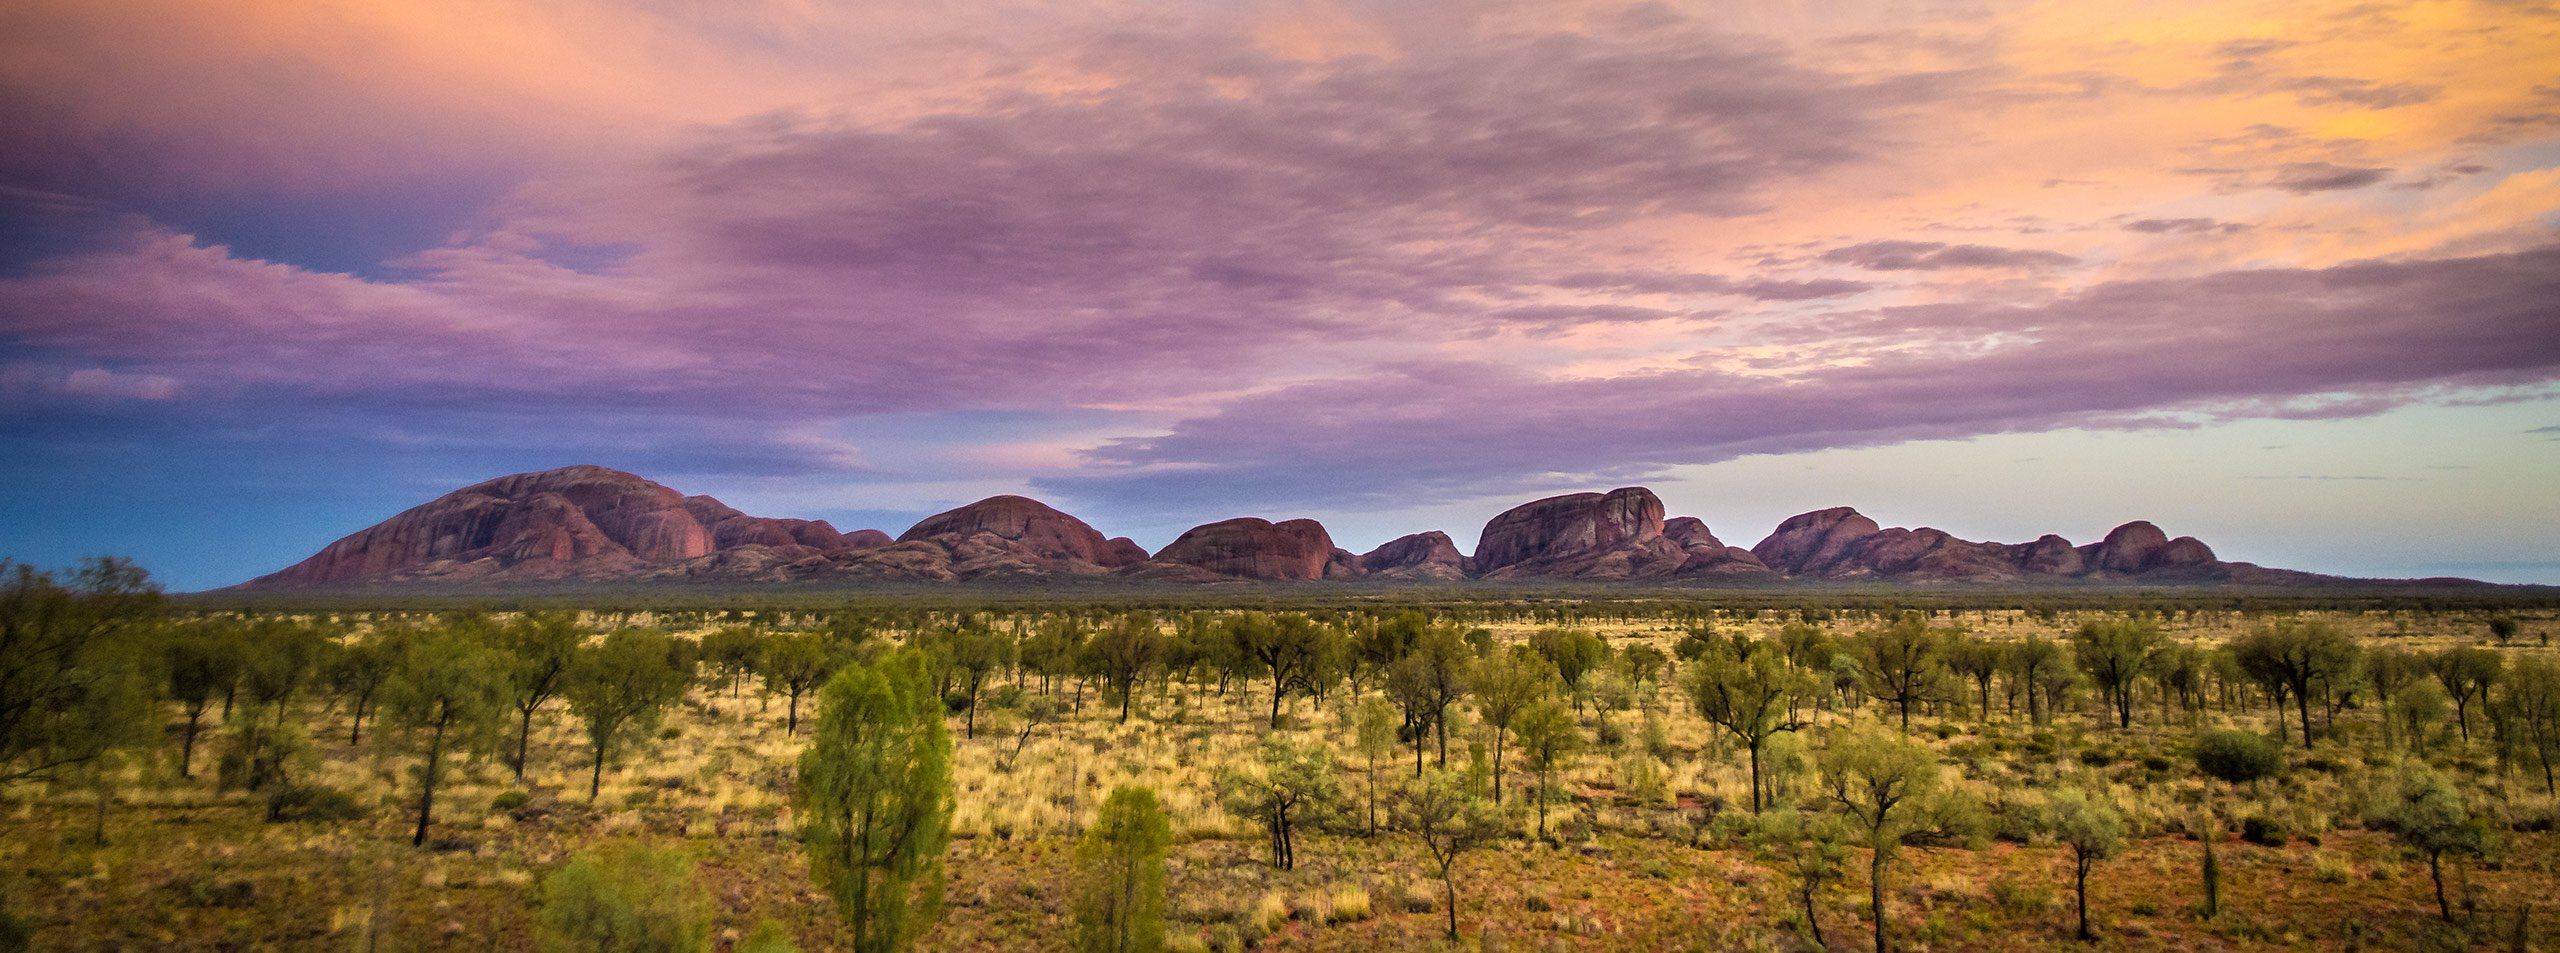 Kata Tjuta Viewing Platform